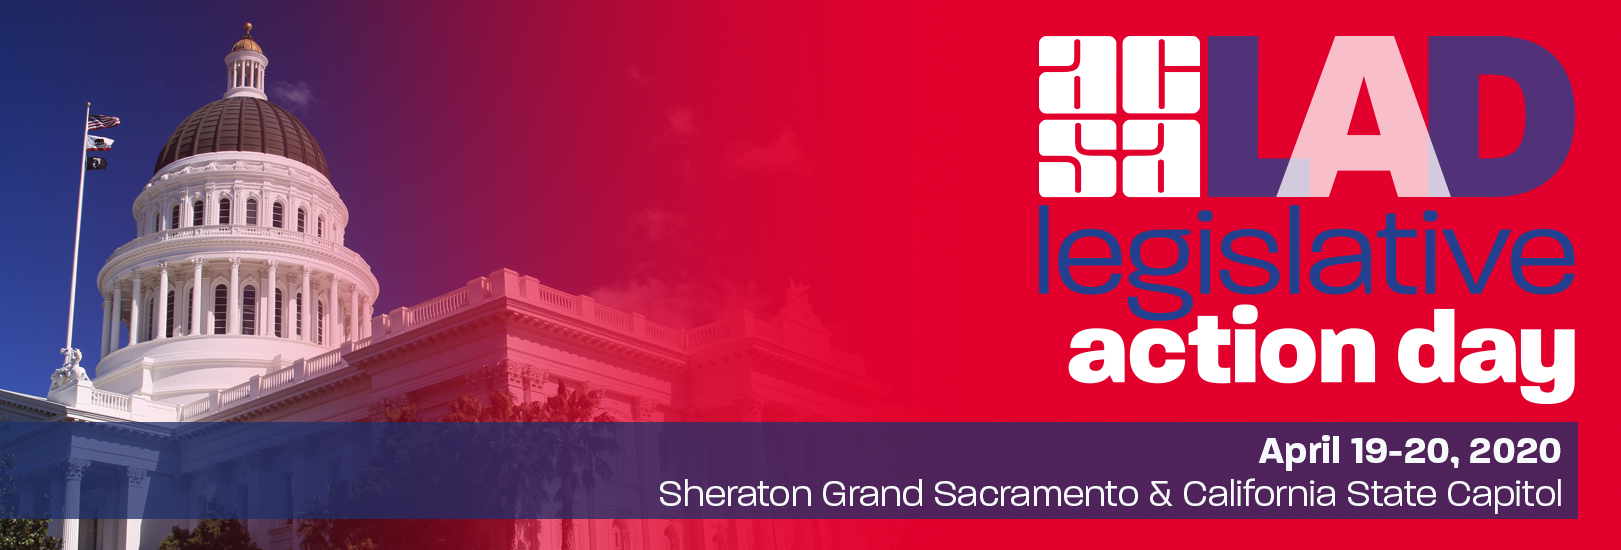 ACSA 2020 Legislative Action Day, April 19-20 in Sacramento.